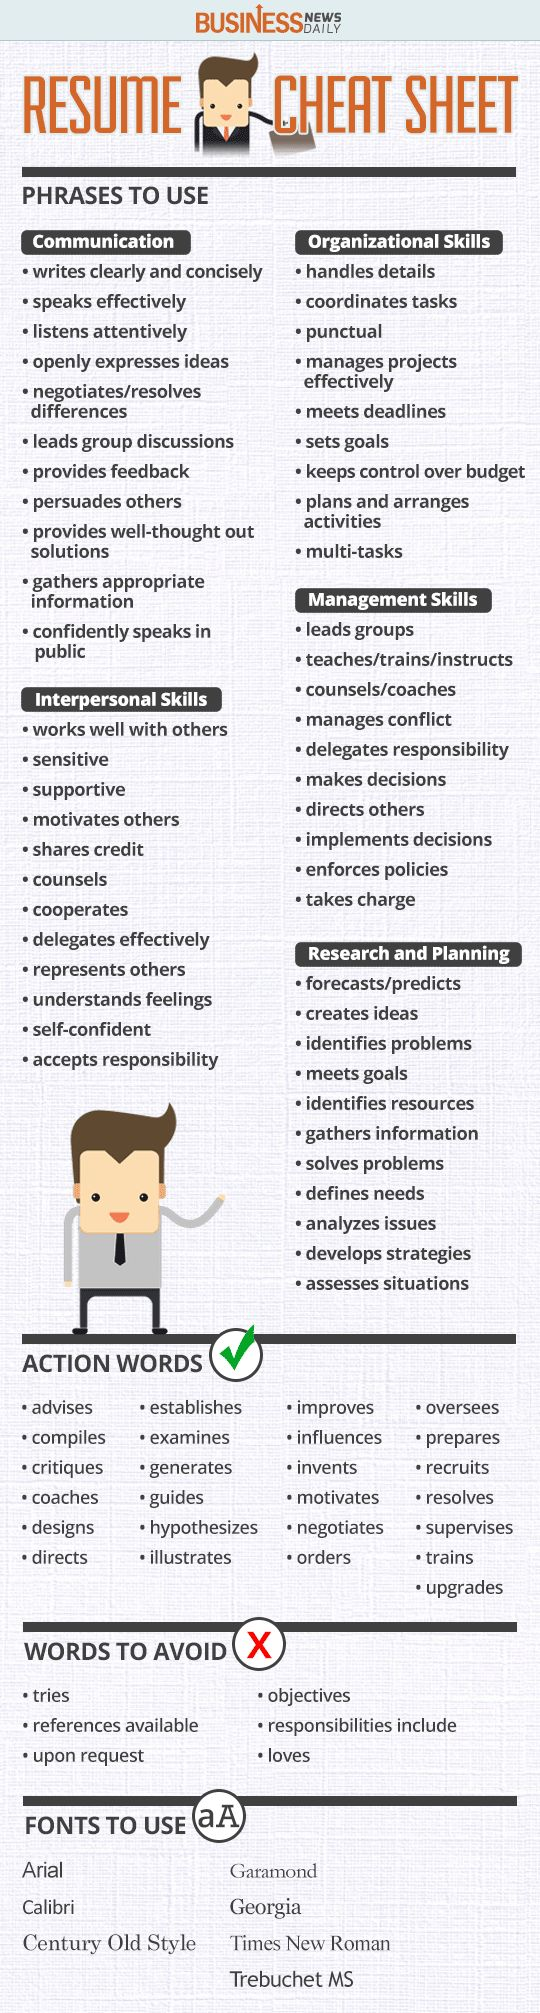 Opposenewapstandardsus  Stunning  Ideas About Resume On Pinterest  Cv Format Resume  With Exciting Resume Cheat Sheet Infographic Andrews Almost Done With A Complete Unit On Employment Which With Beauteous Project Manager Resume Template Also Resume Bu In Addition Bartender Duties For Resume And Makeup Artist Resume Examples As Well As Resume And Resume Additionally Communications Director Resume From Pinterestcom With Opposenewapstandardsus  Exciting  Ideas About Resume On Pinterest  Cv Format Resume  With Beauteous Resume Cheat Sheet Infographic Andrews Almost Done With A Complete Unit On Employment Which And Stunning Project Manager Resume Template Also Resume Bu In Addition Bartender Duties For Resume From Pinterestcom